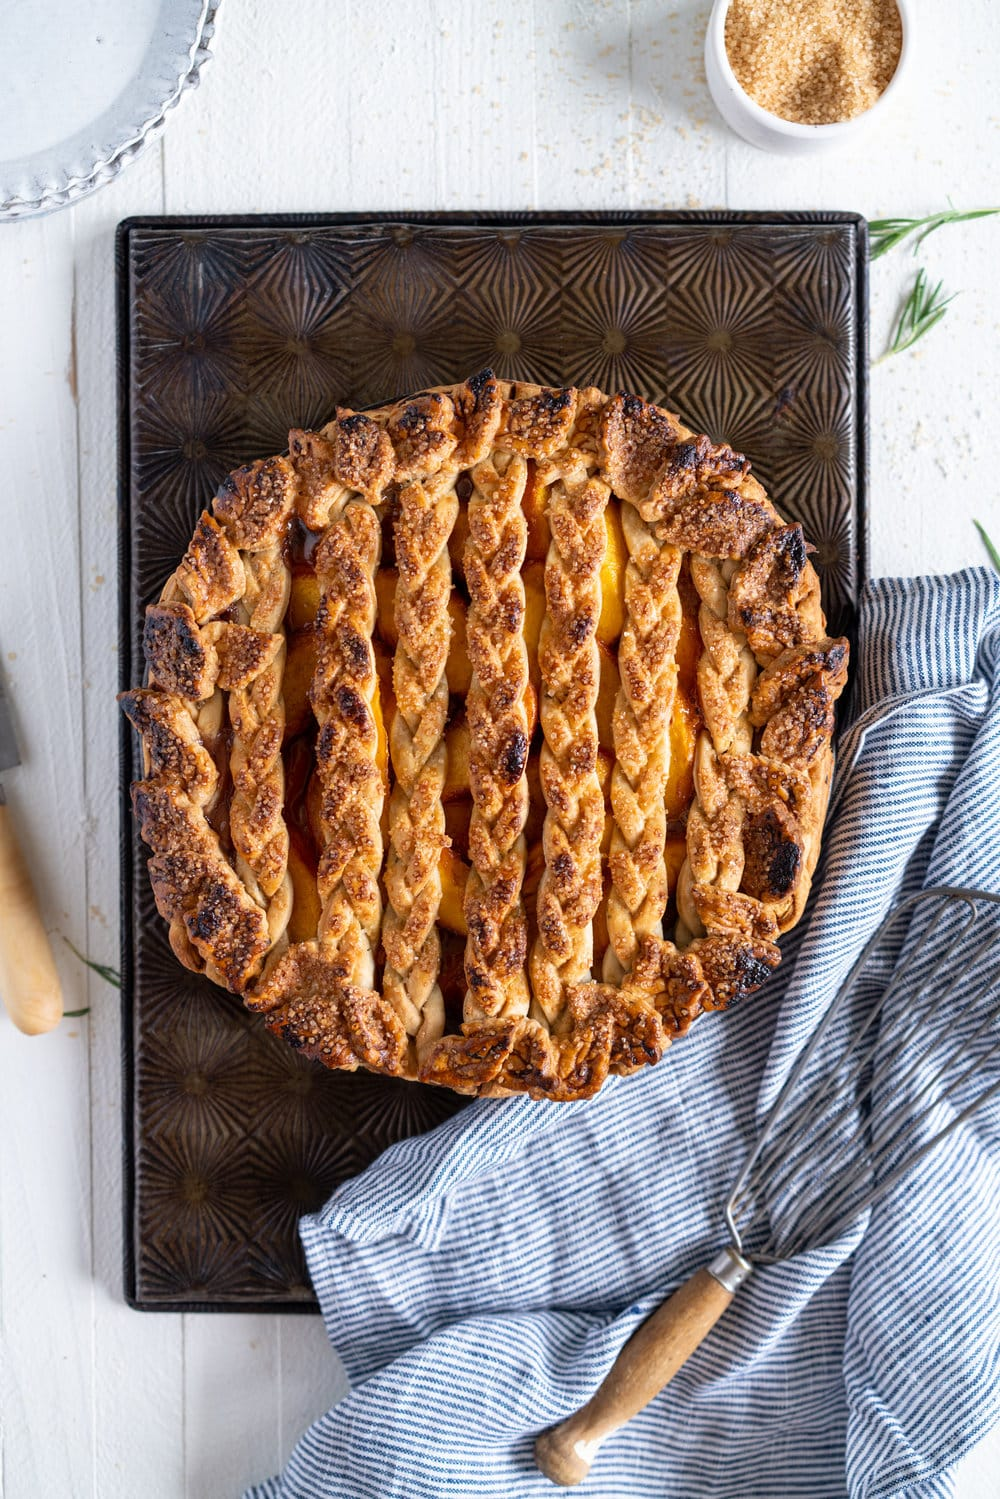 Peach and Vanilla Bean Pie with Fresh Rosemary Pie Crust - sweet, summer peaches are elevated with vanilla bean paste, and wrapped up in a sweet pie crust filled with fresh rosemary. #peachpie #peachandrosemarypie